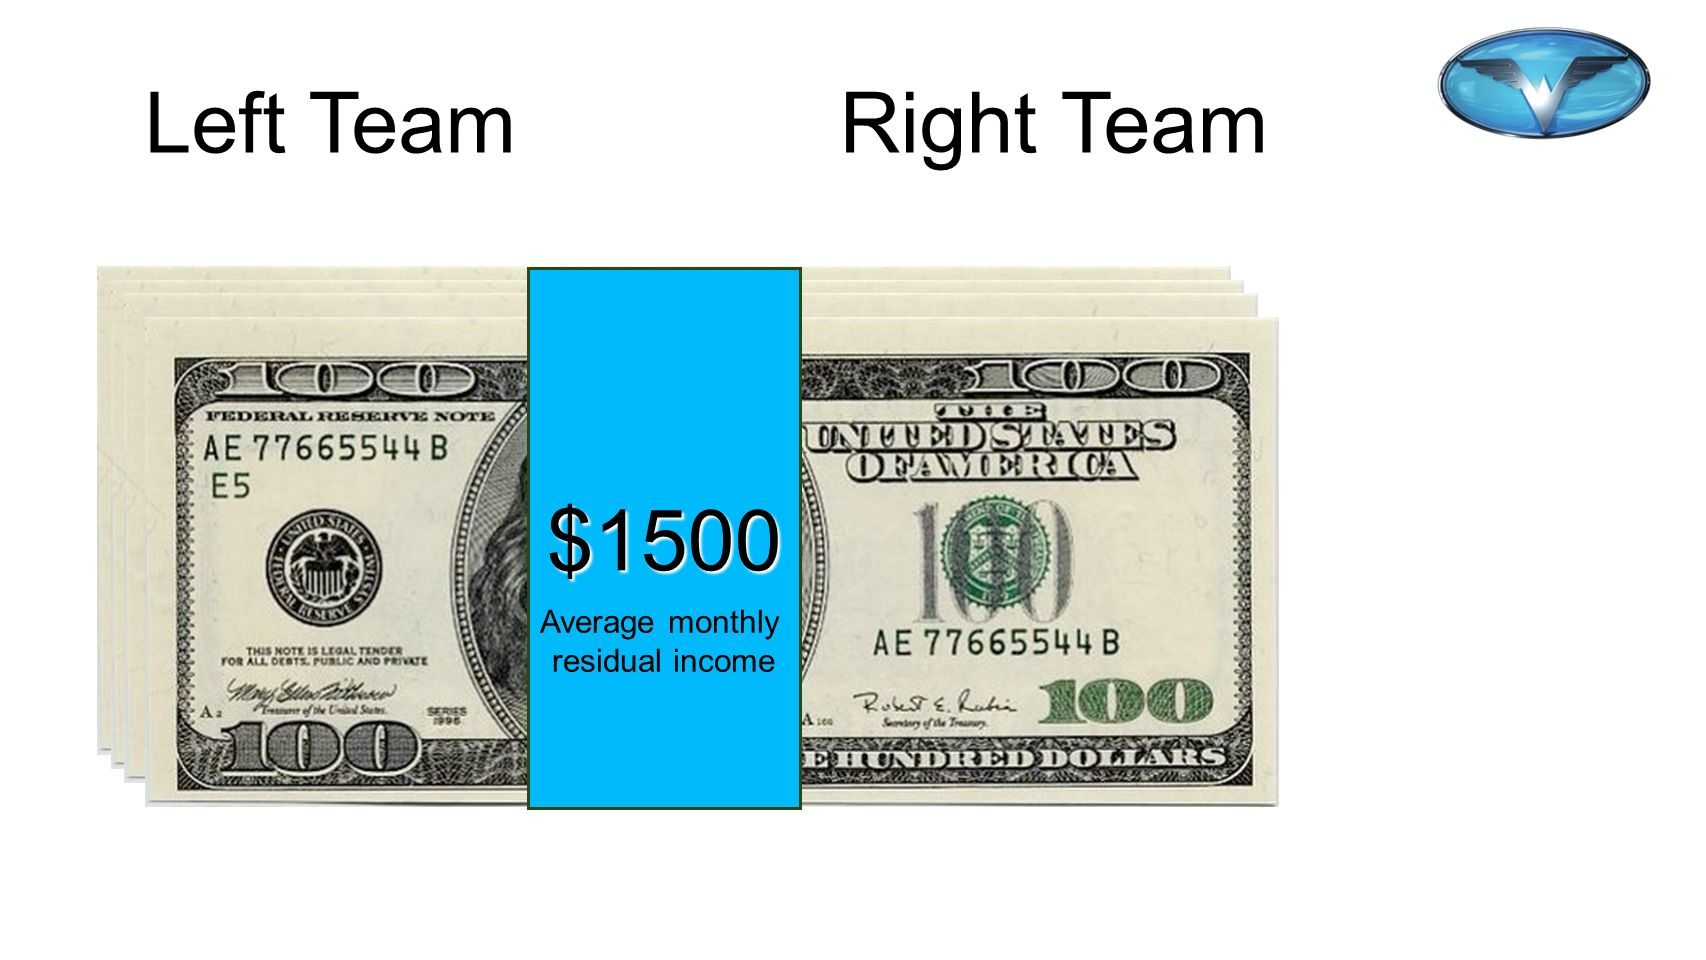 90 90 Left Team Right Team Sales Sales $1500 Average monthly